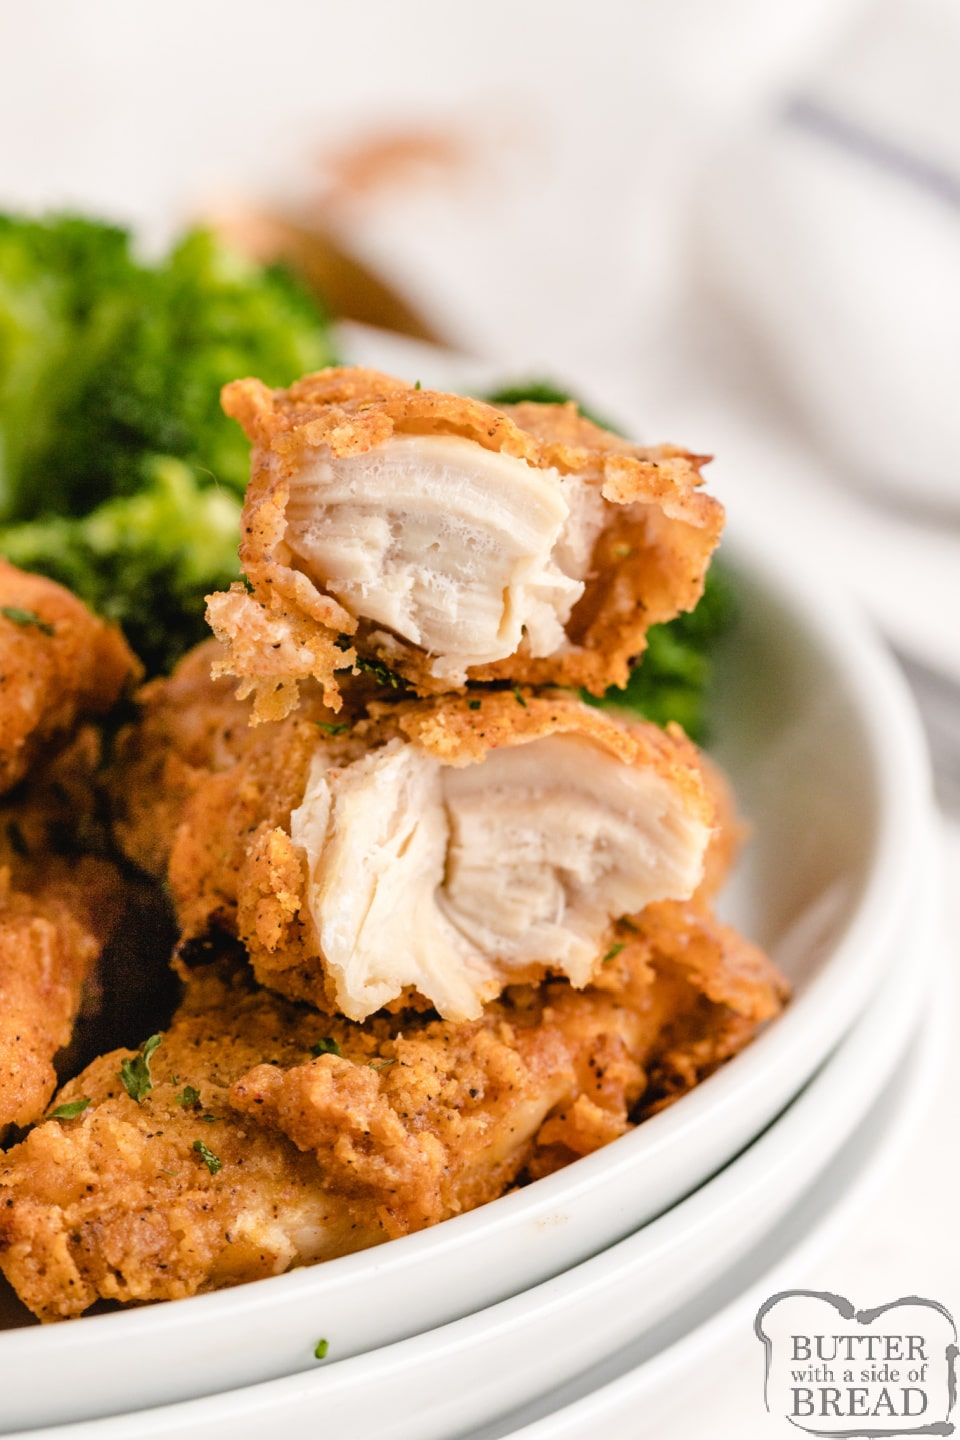 """Oven Baked """"Fried"""" Chicken made with chicken tenders hand breaded in a simple coating and then baked in the oven. Tastes just like fried chicken without frying in oil!"""